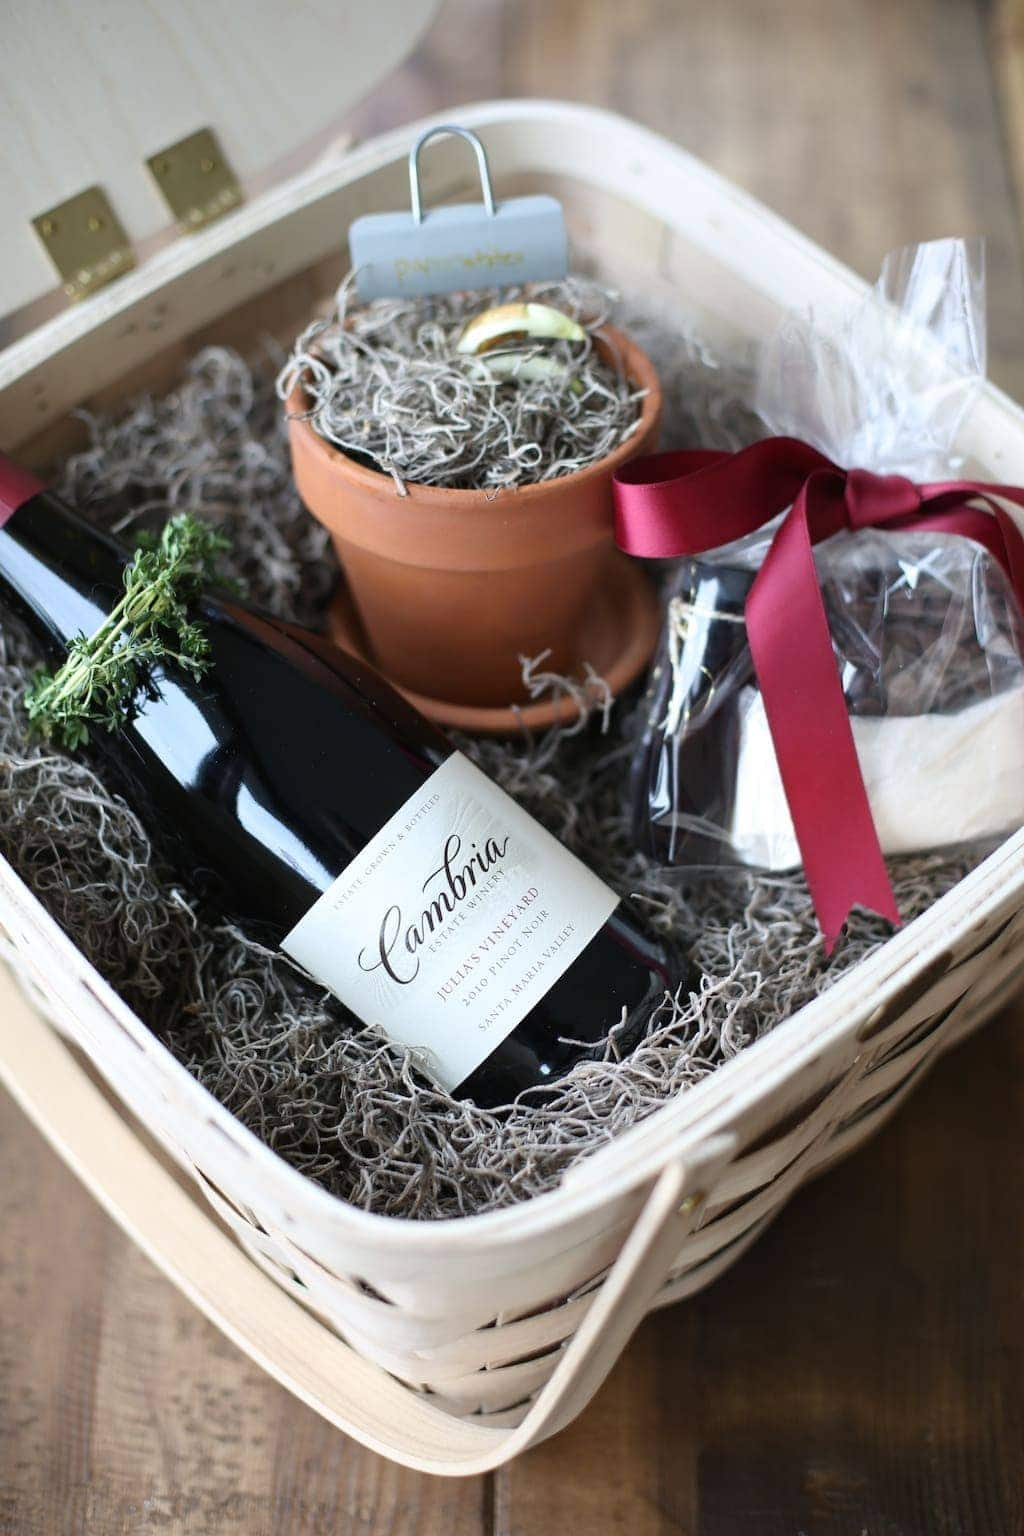 A wine and chocolate gift basket with a potted plant in the basket too.